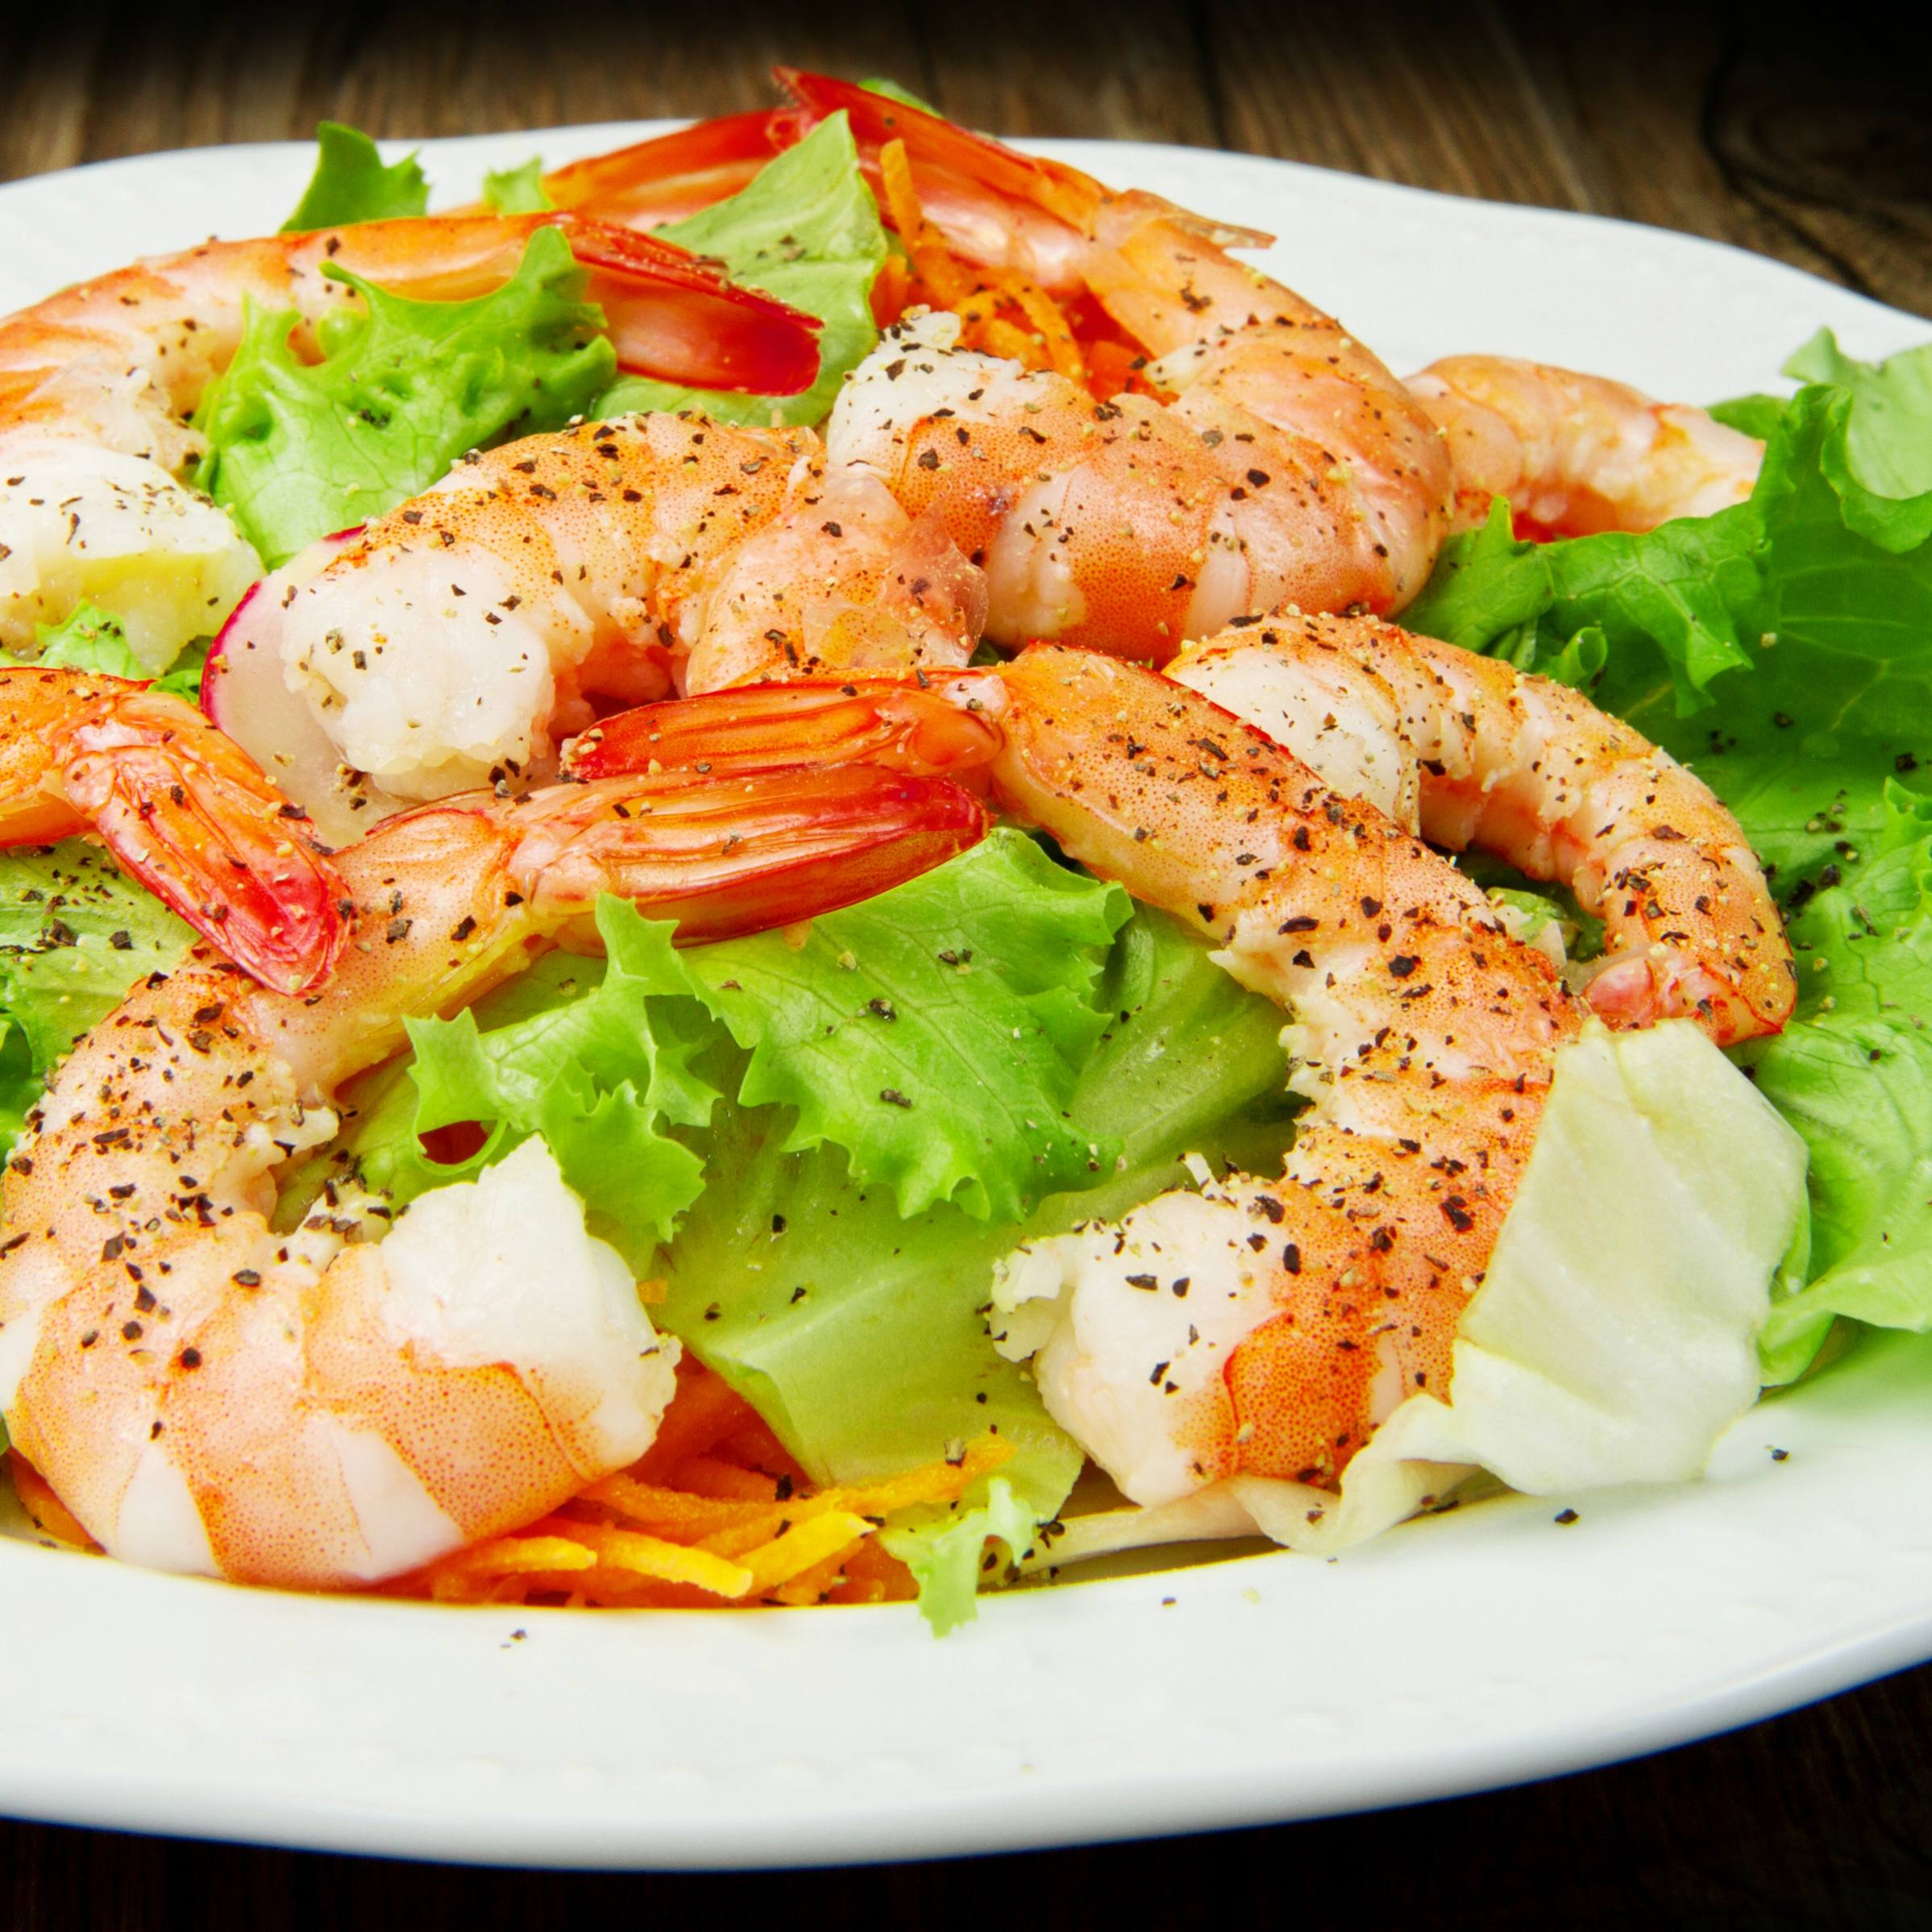 fresh green lettuce salad with shrimp (Omega-3 fatty acids) for good cholesterol (HDL)